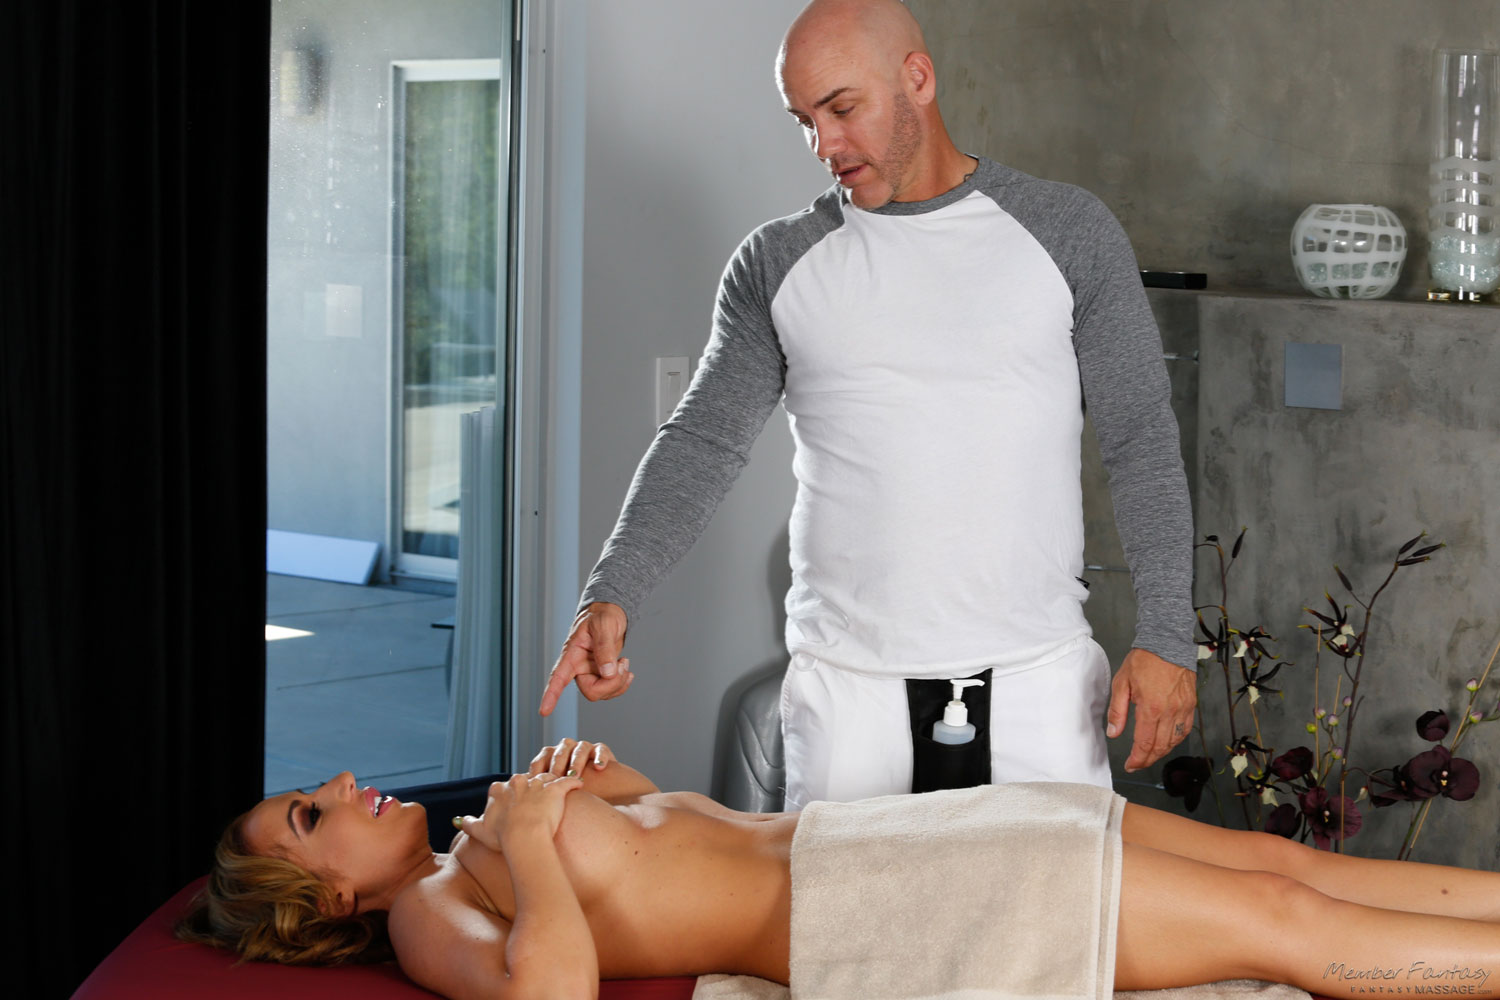 richelle ryan massage